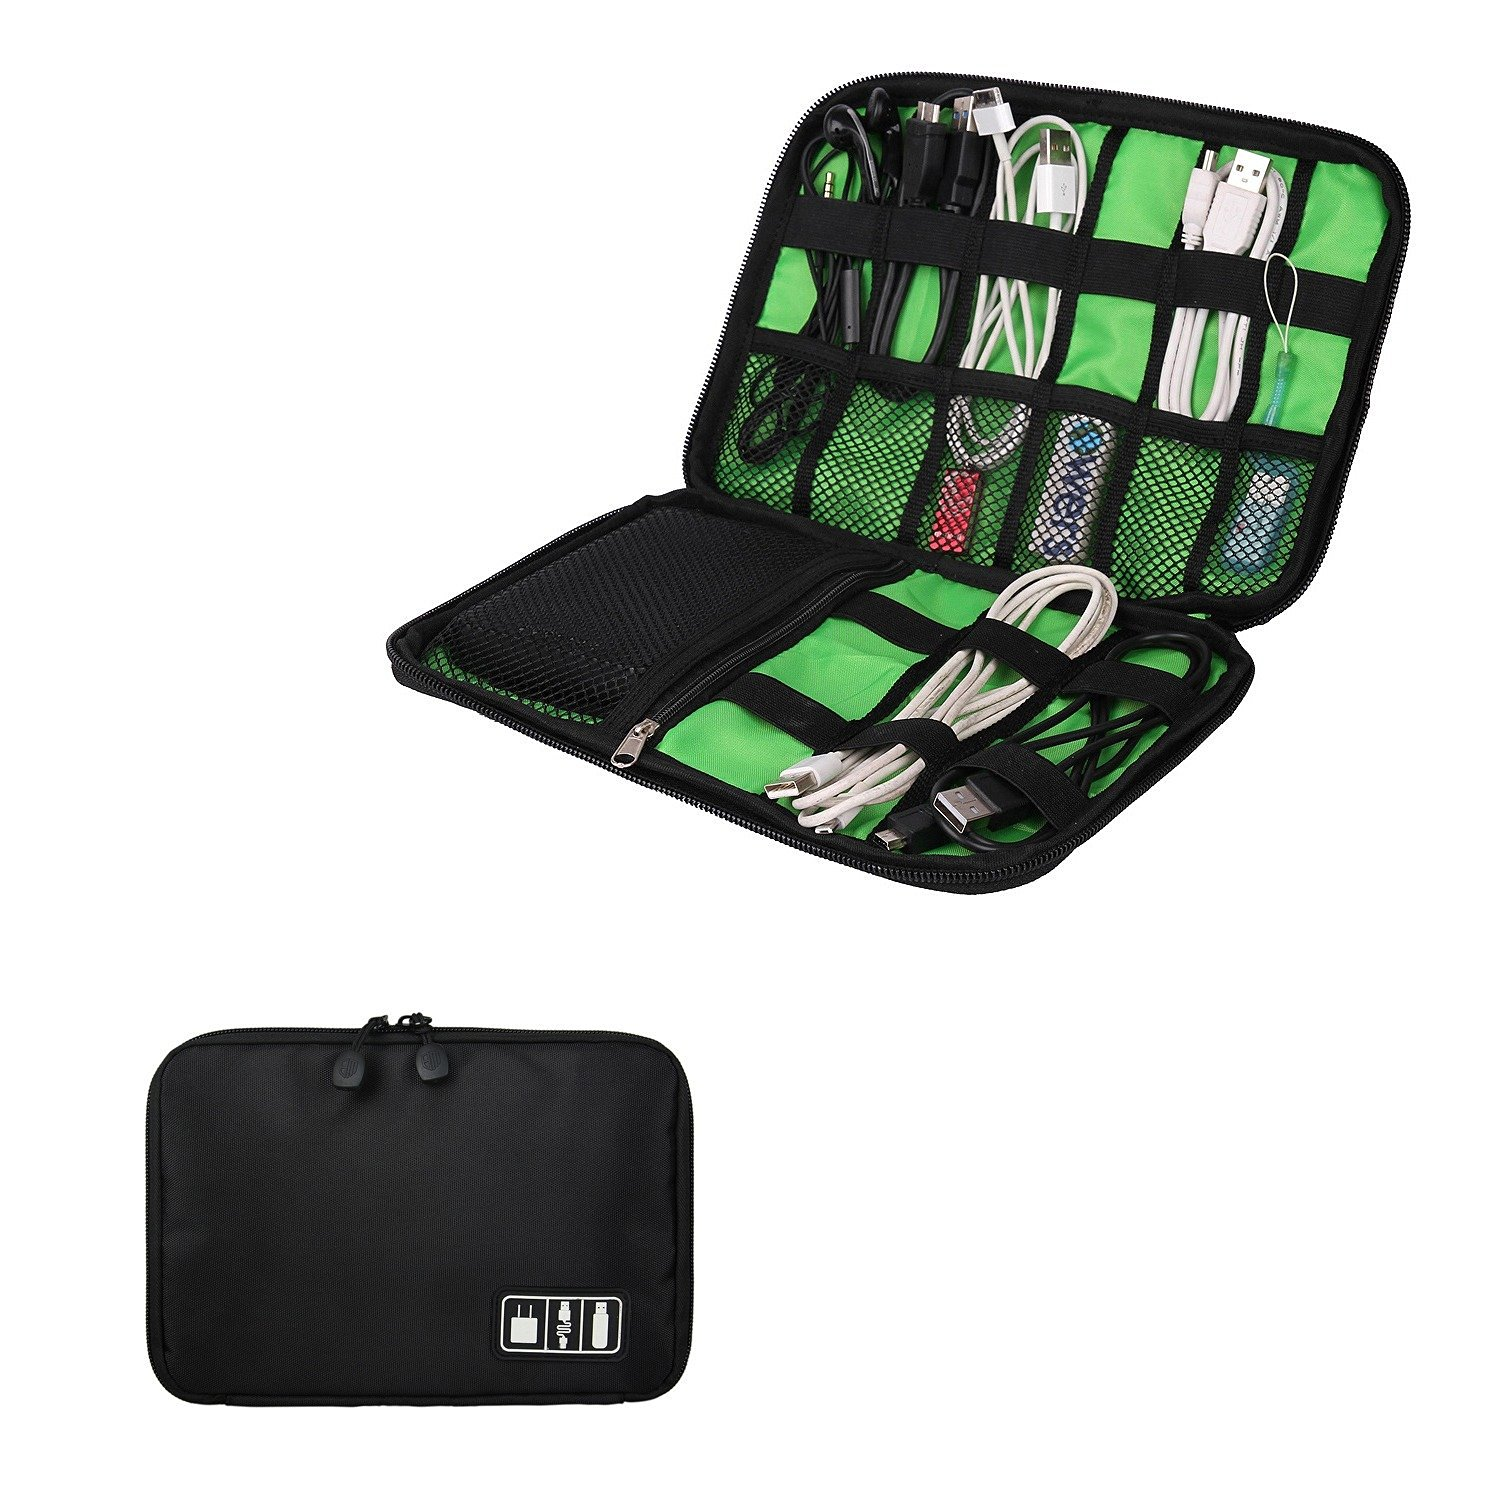 Foryee Waterproof Portable Universal Electronics Accessories Travel Organizer / Hard Drive Case / Cable Organiser